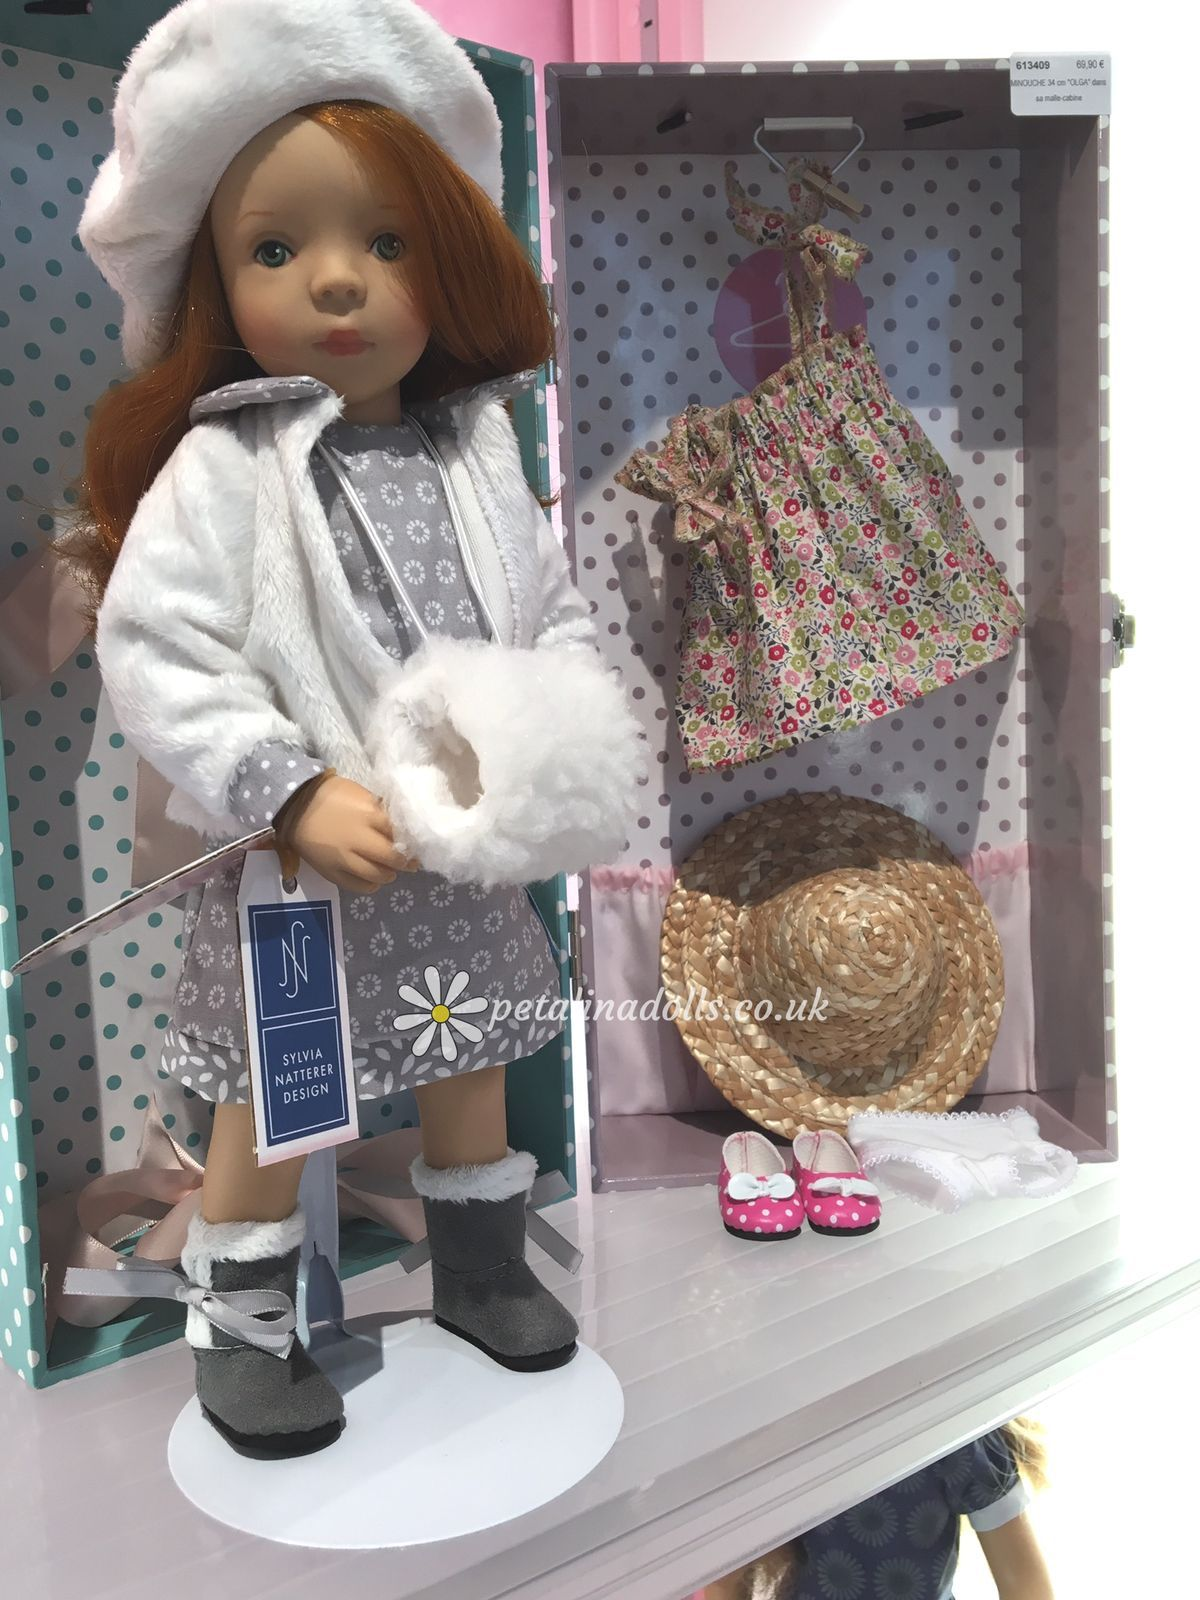 Minouche Olga, a very special doll for 2016 by Sylvia Natterer for Petitcollin. The traditional Petitcollin trunks make wonderful gifts.